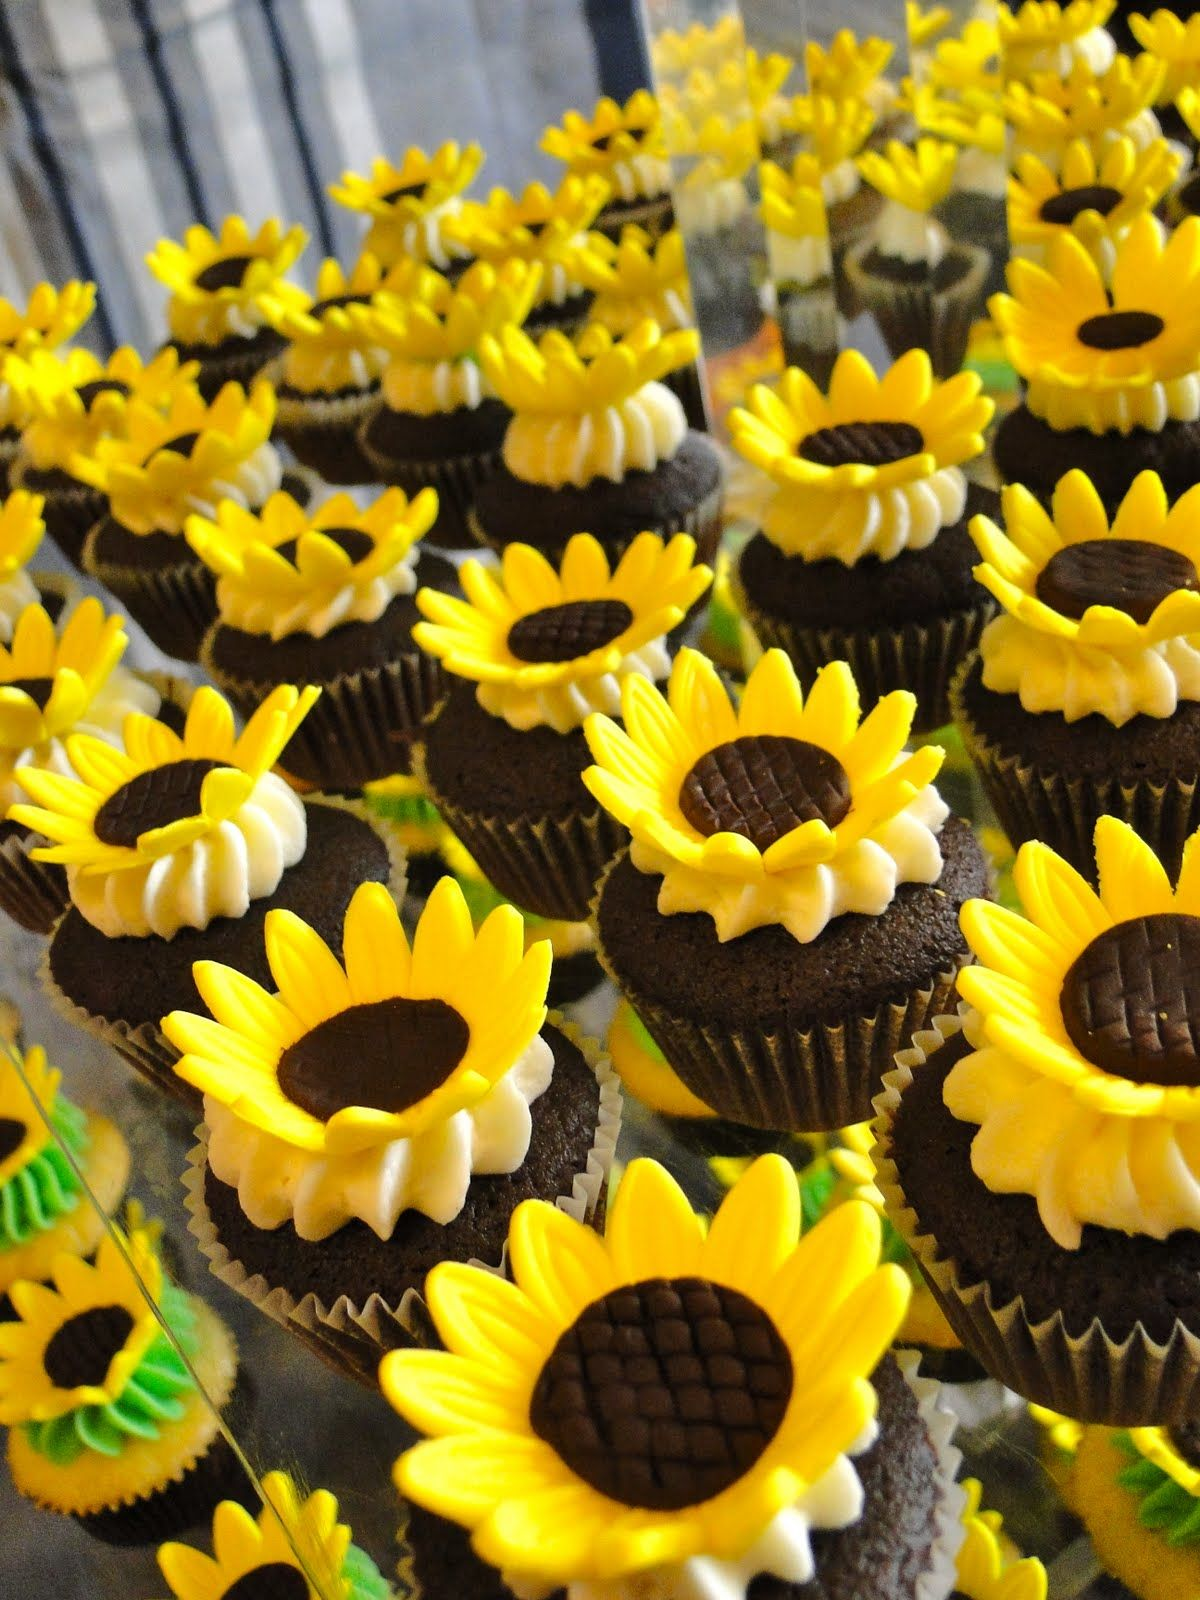 sunflower wedding decorations dont miss sunflower wedding decoration ideas - Sunflower Decorations